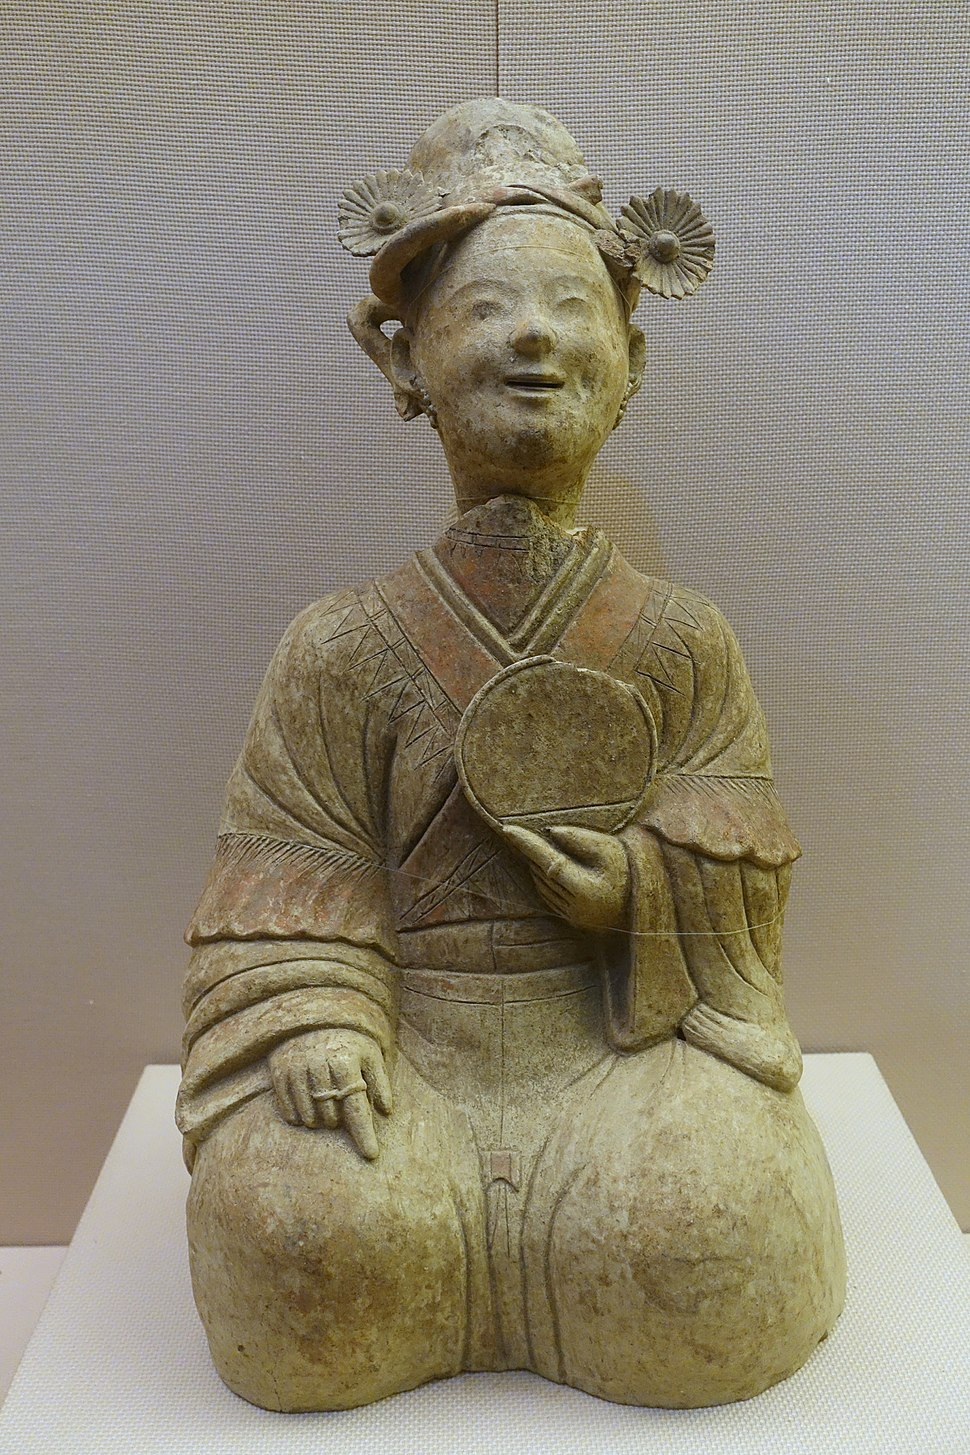 Woman with a mirror, China, unearthed at Songjialin, Pixian, Sichuan, Eastern Han dynasty, 25-220 AD, ceramic - Sichuan Provincial Museum - Chengdu, China - DSC04768